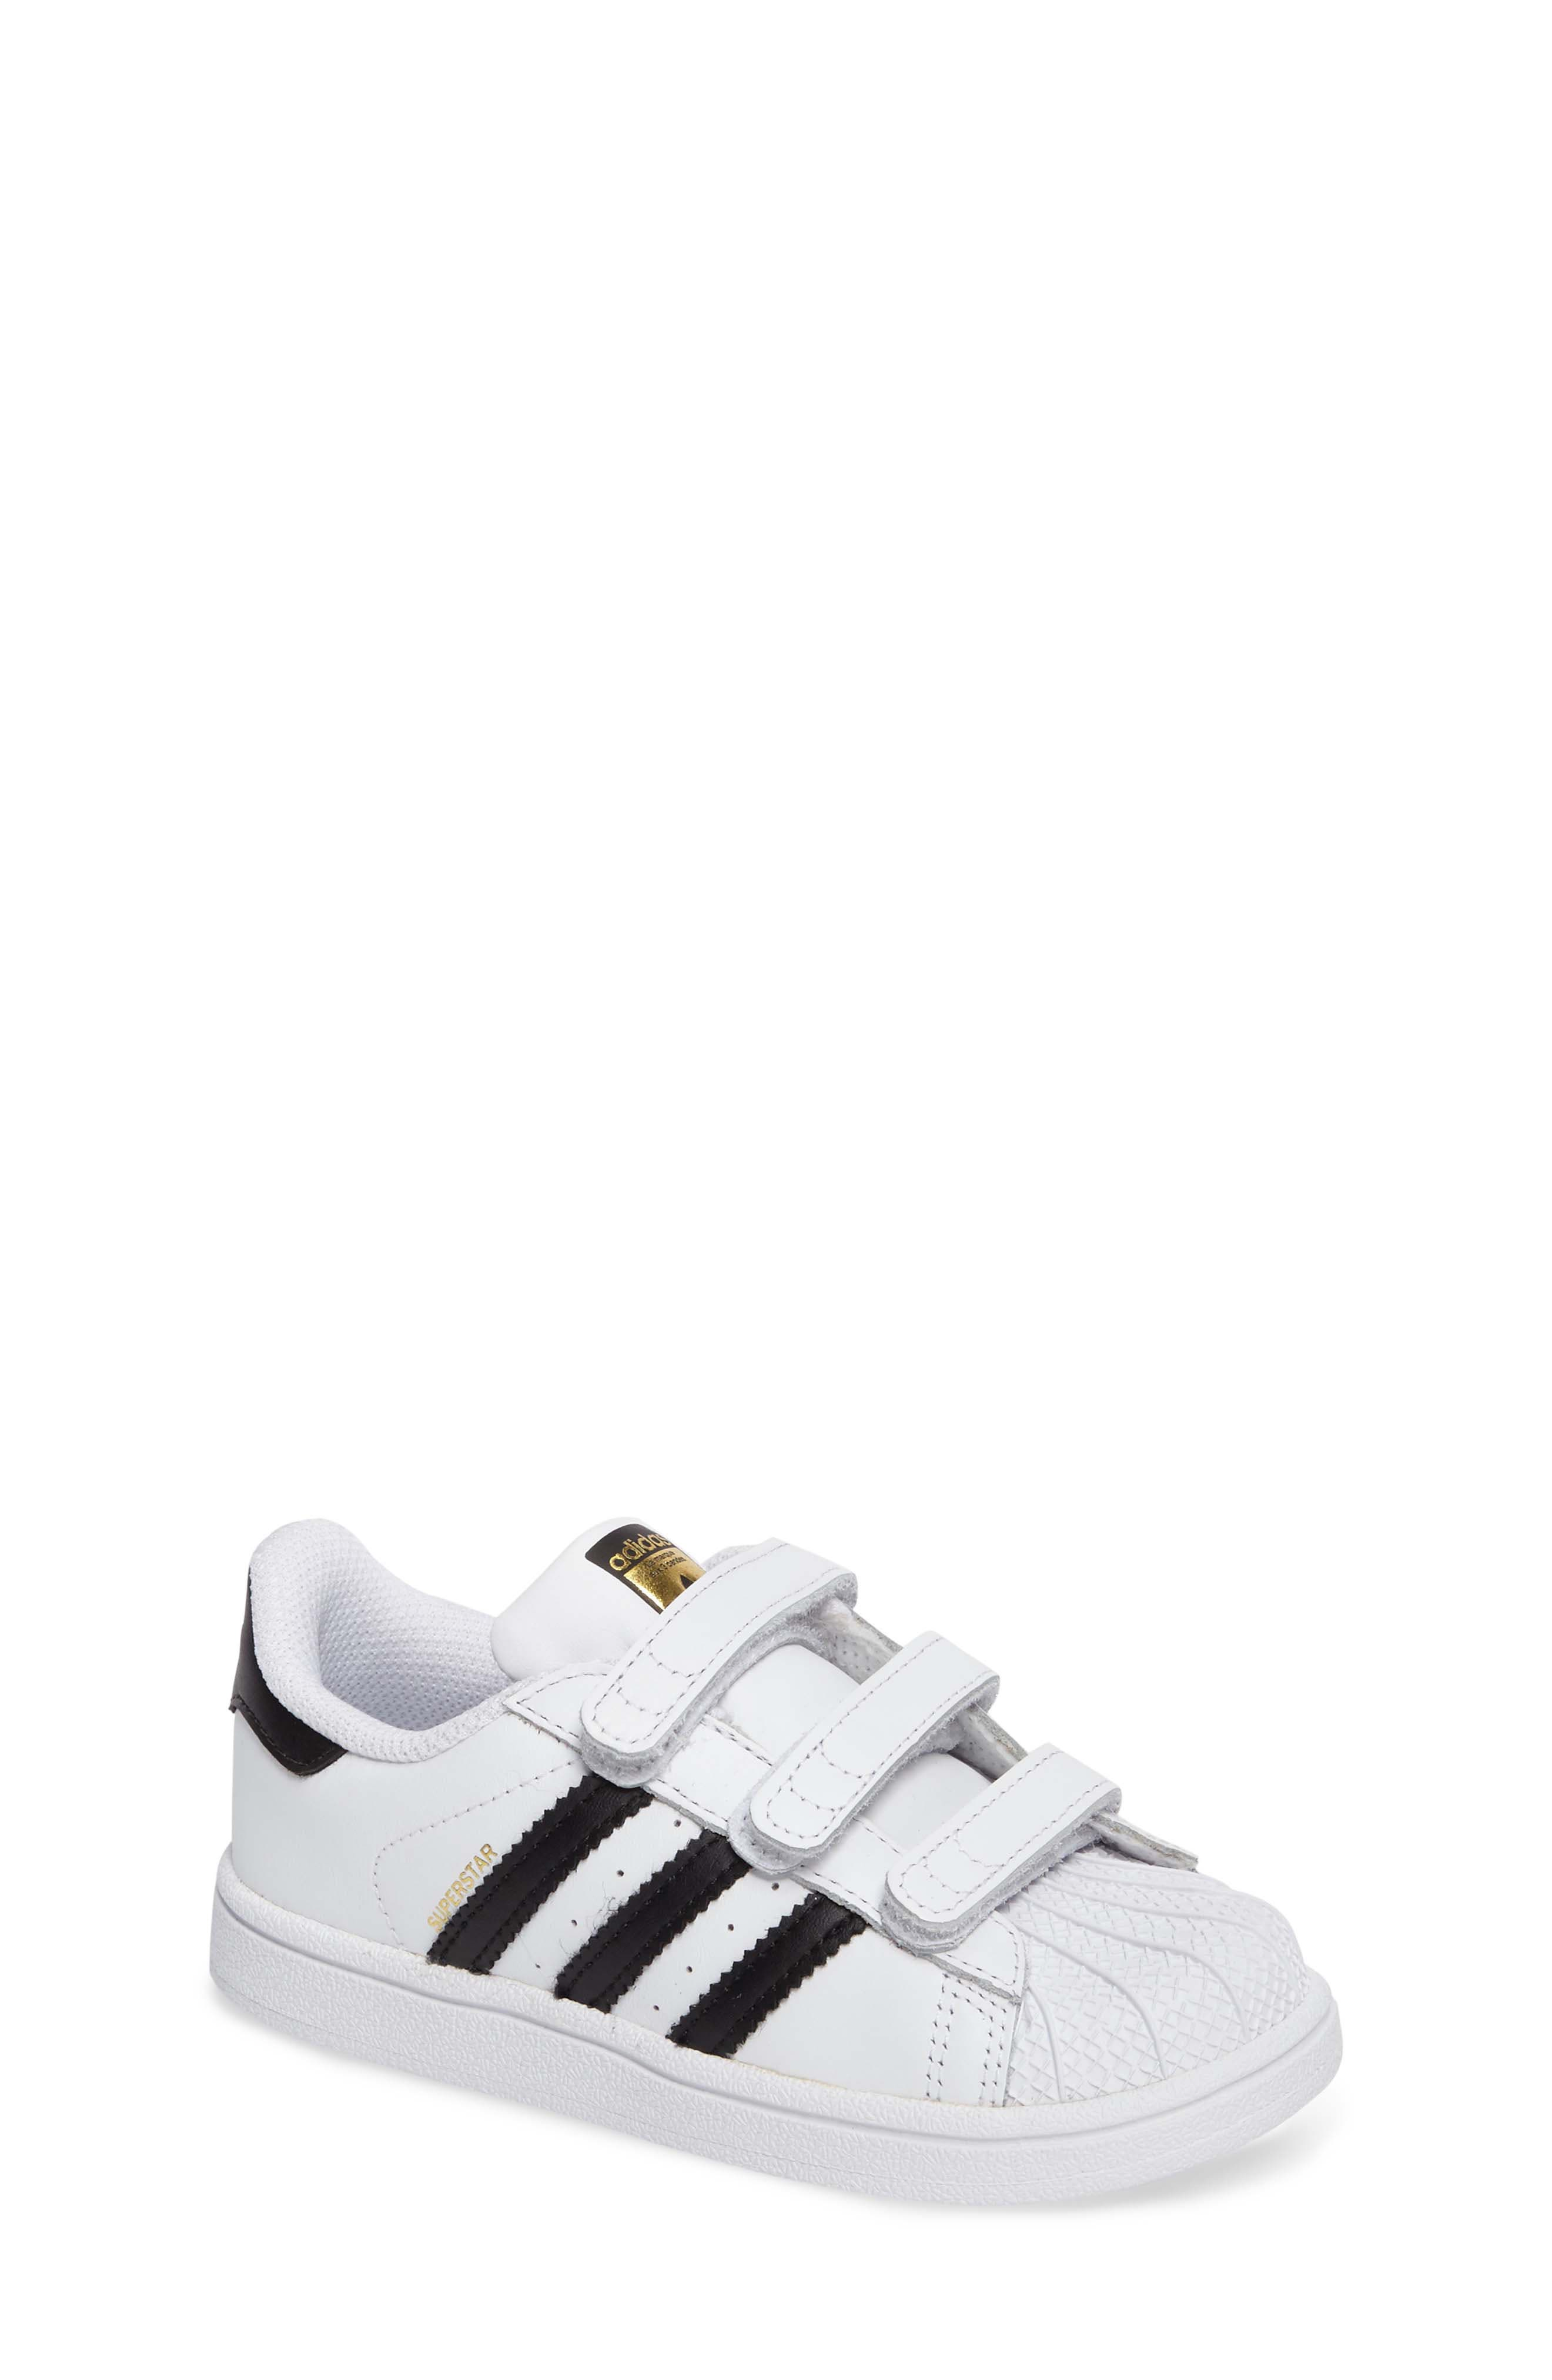 adidas Superstar CF I Sneaker (Baby, Walker \u0026 Toddler)